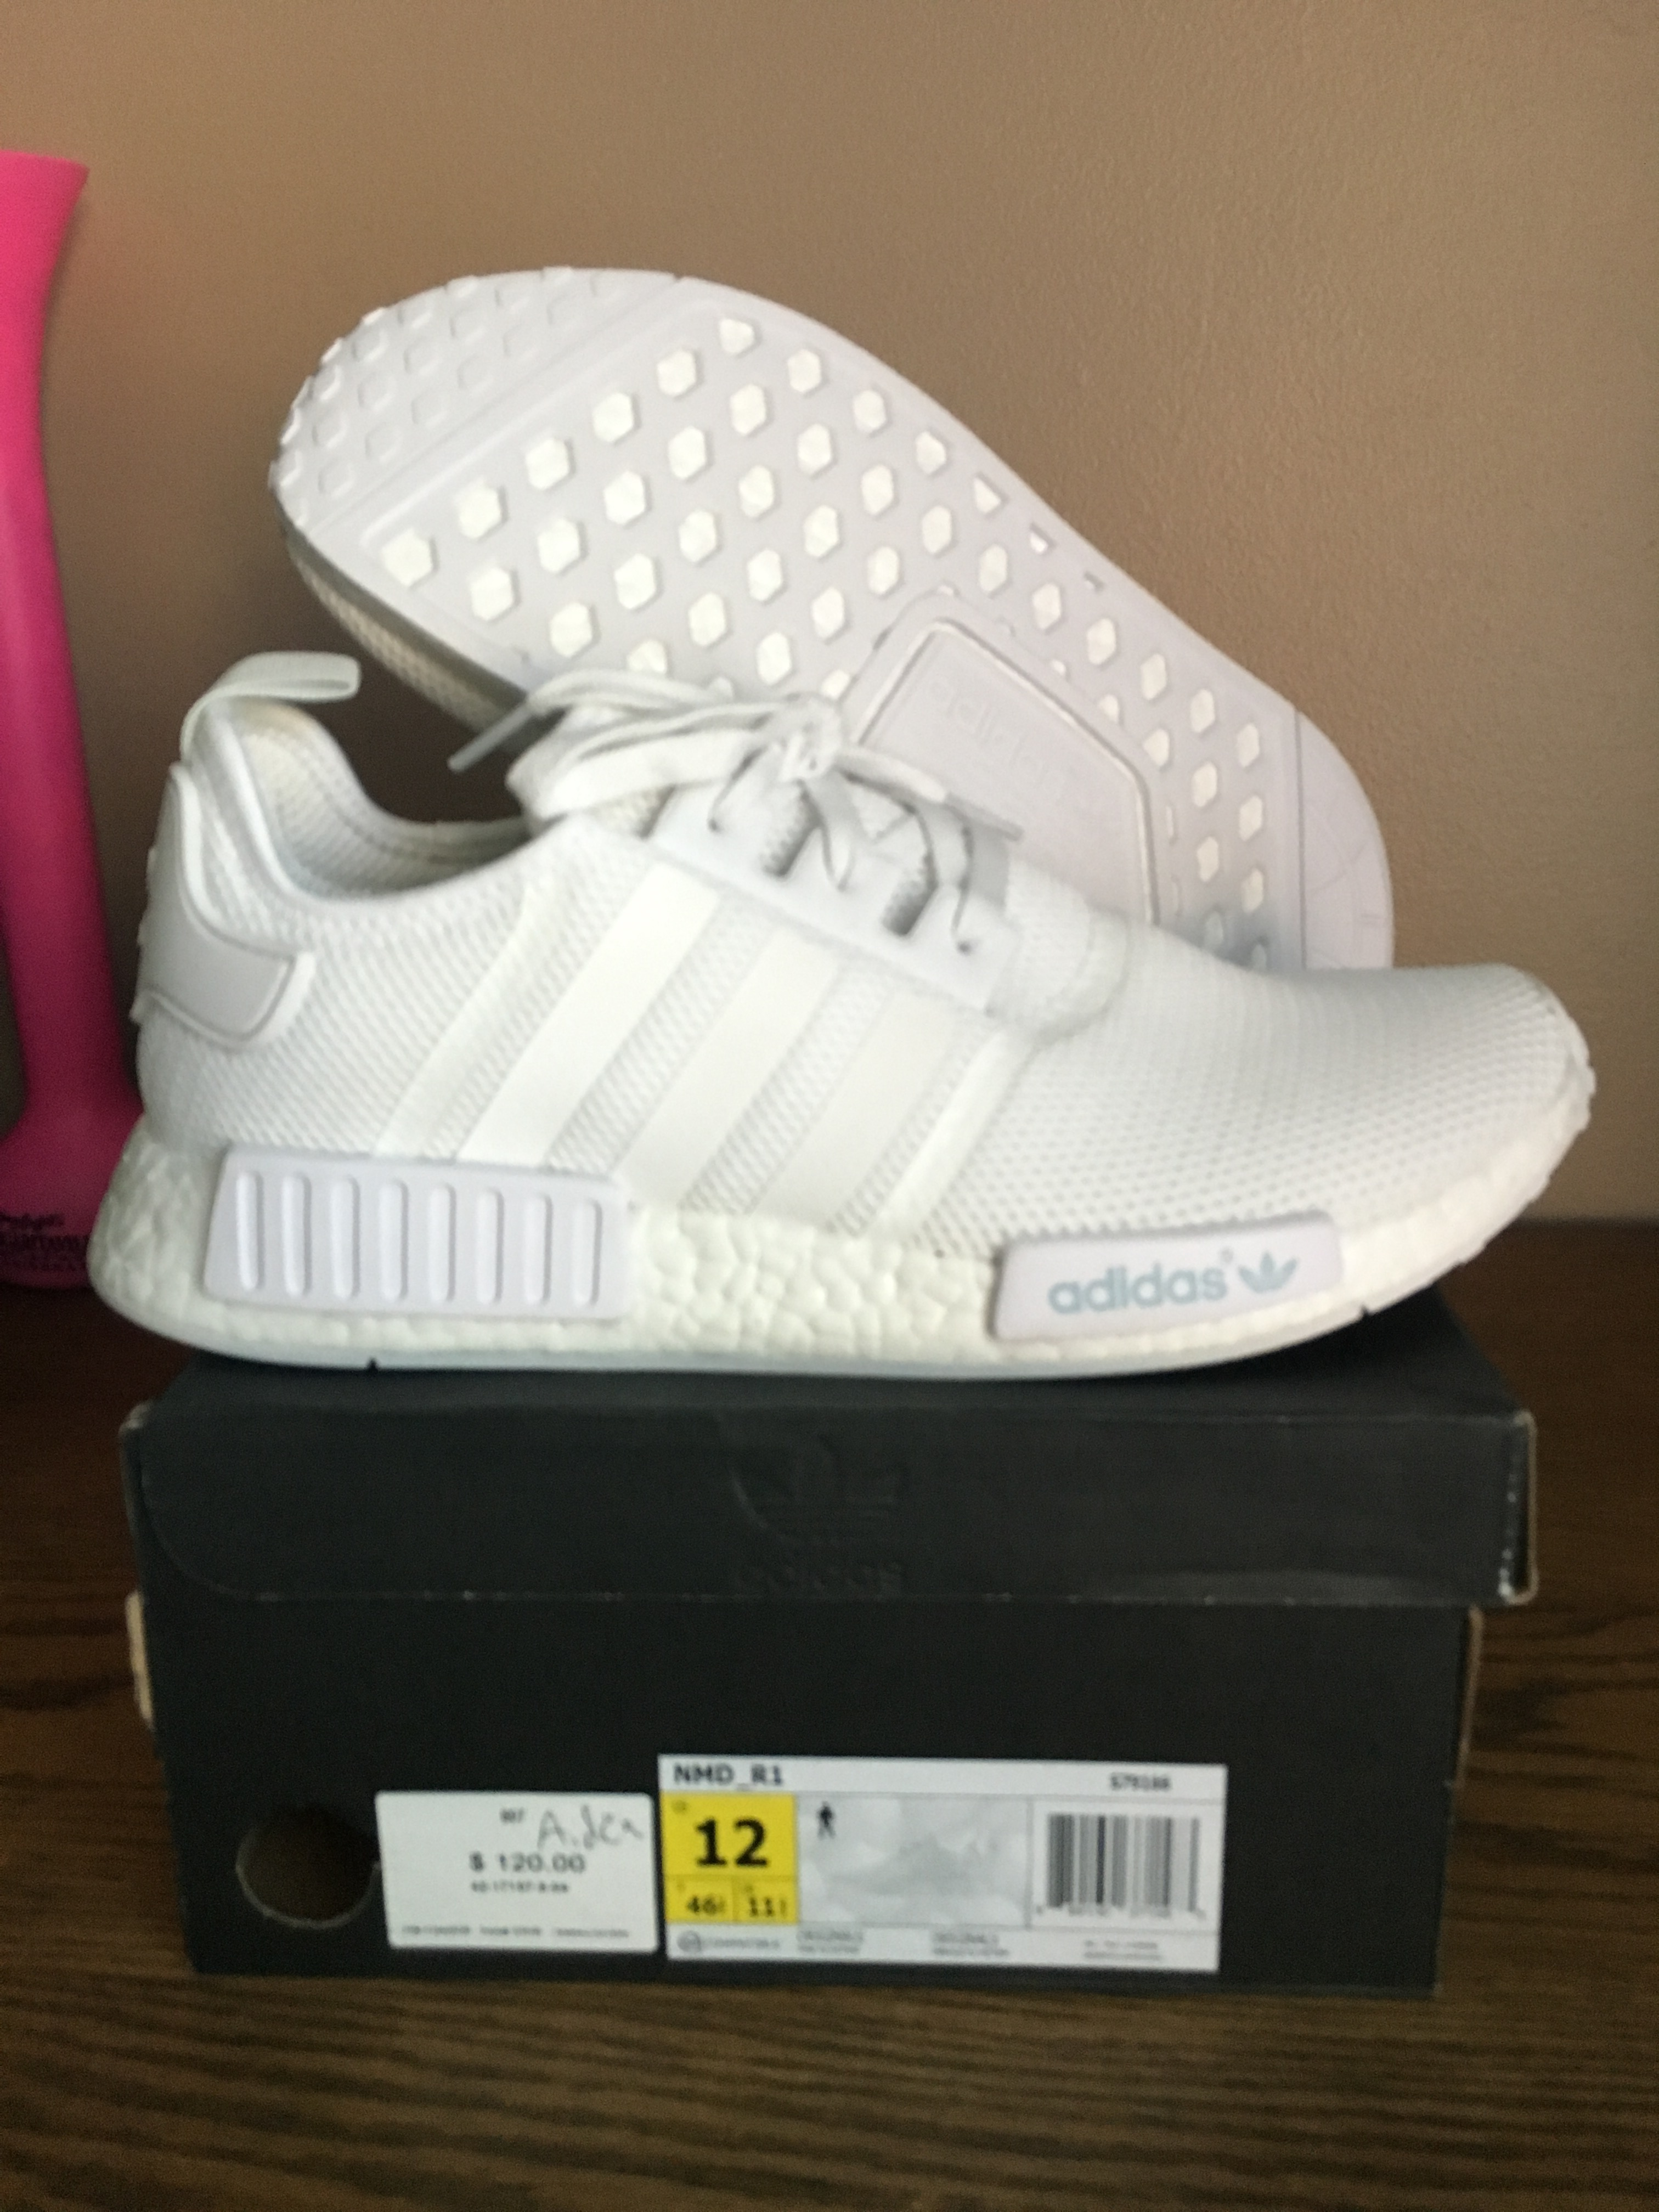 a6ff8c14938c6 Adidas ×. ADIDAS NMD R1 MESH S79166 TRIPLE WHITE RUNNER MEN S 12 NOMAD  BOOST CORE. Size  US ...